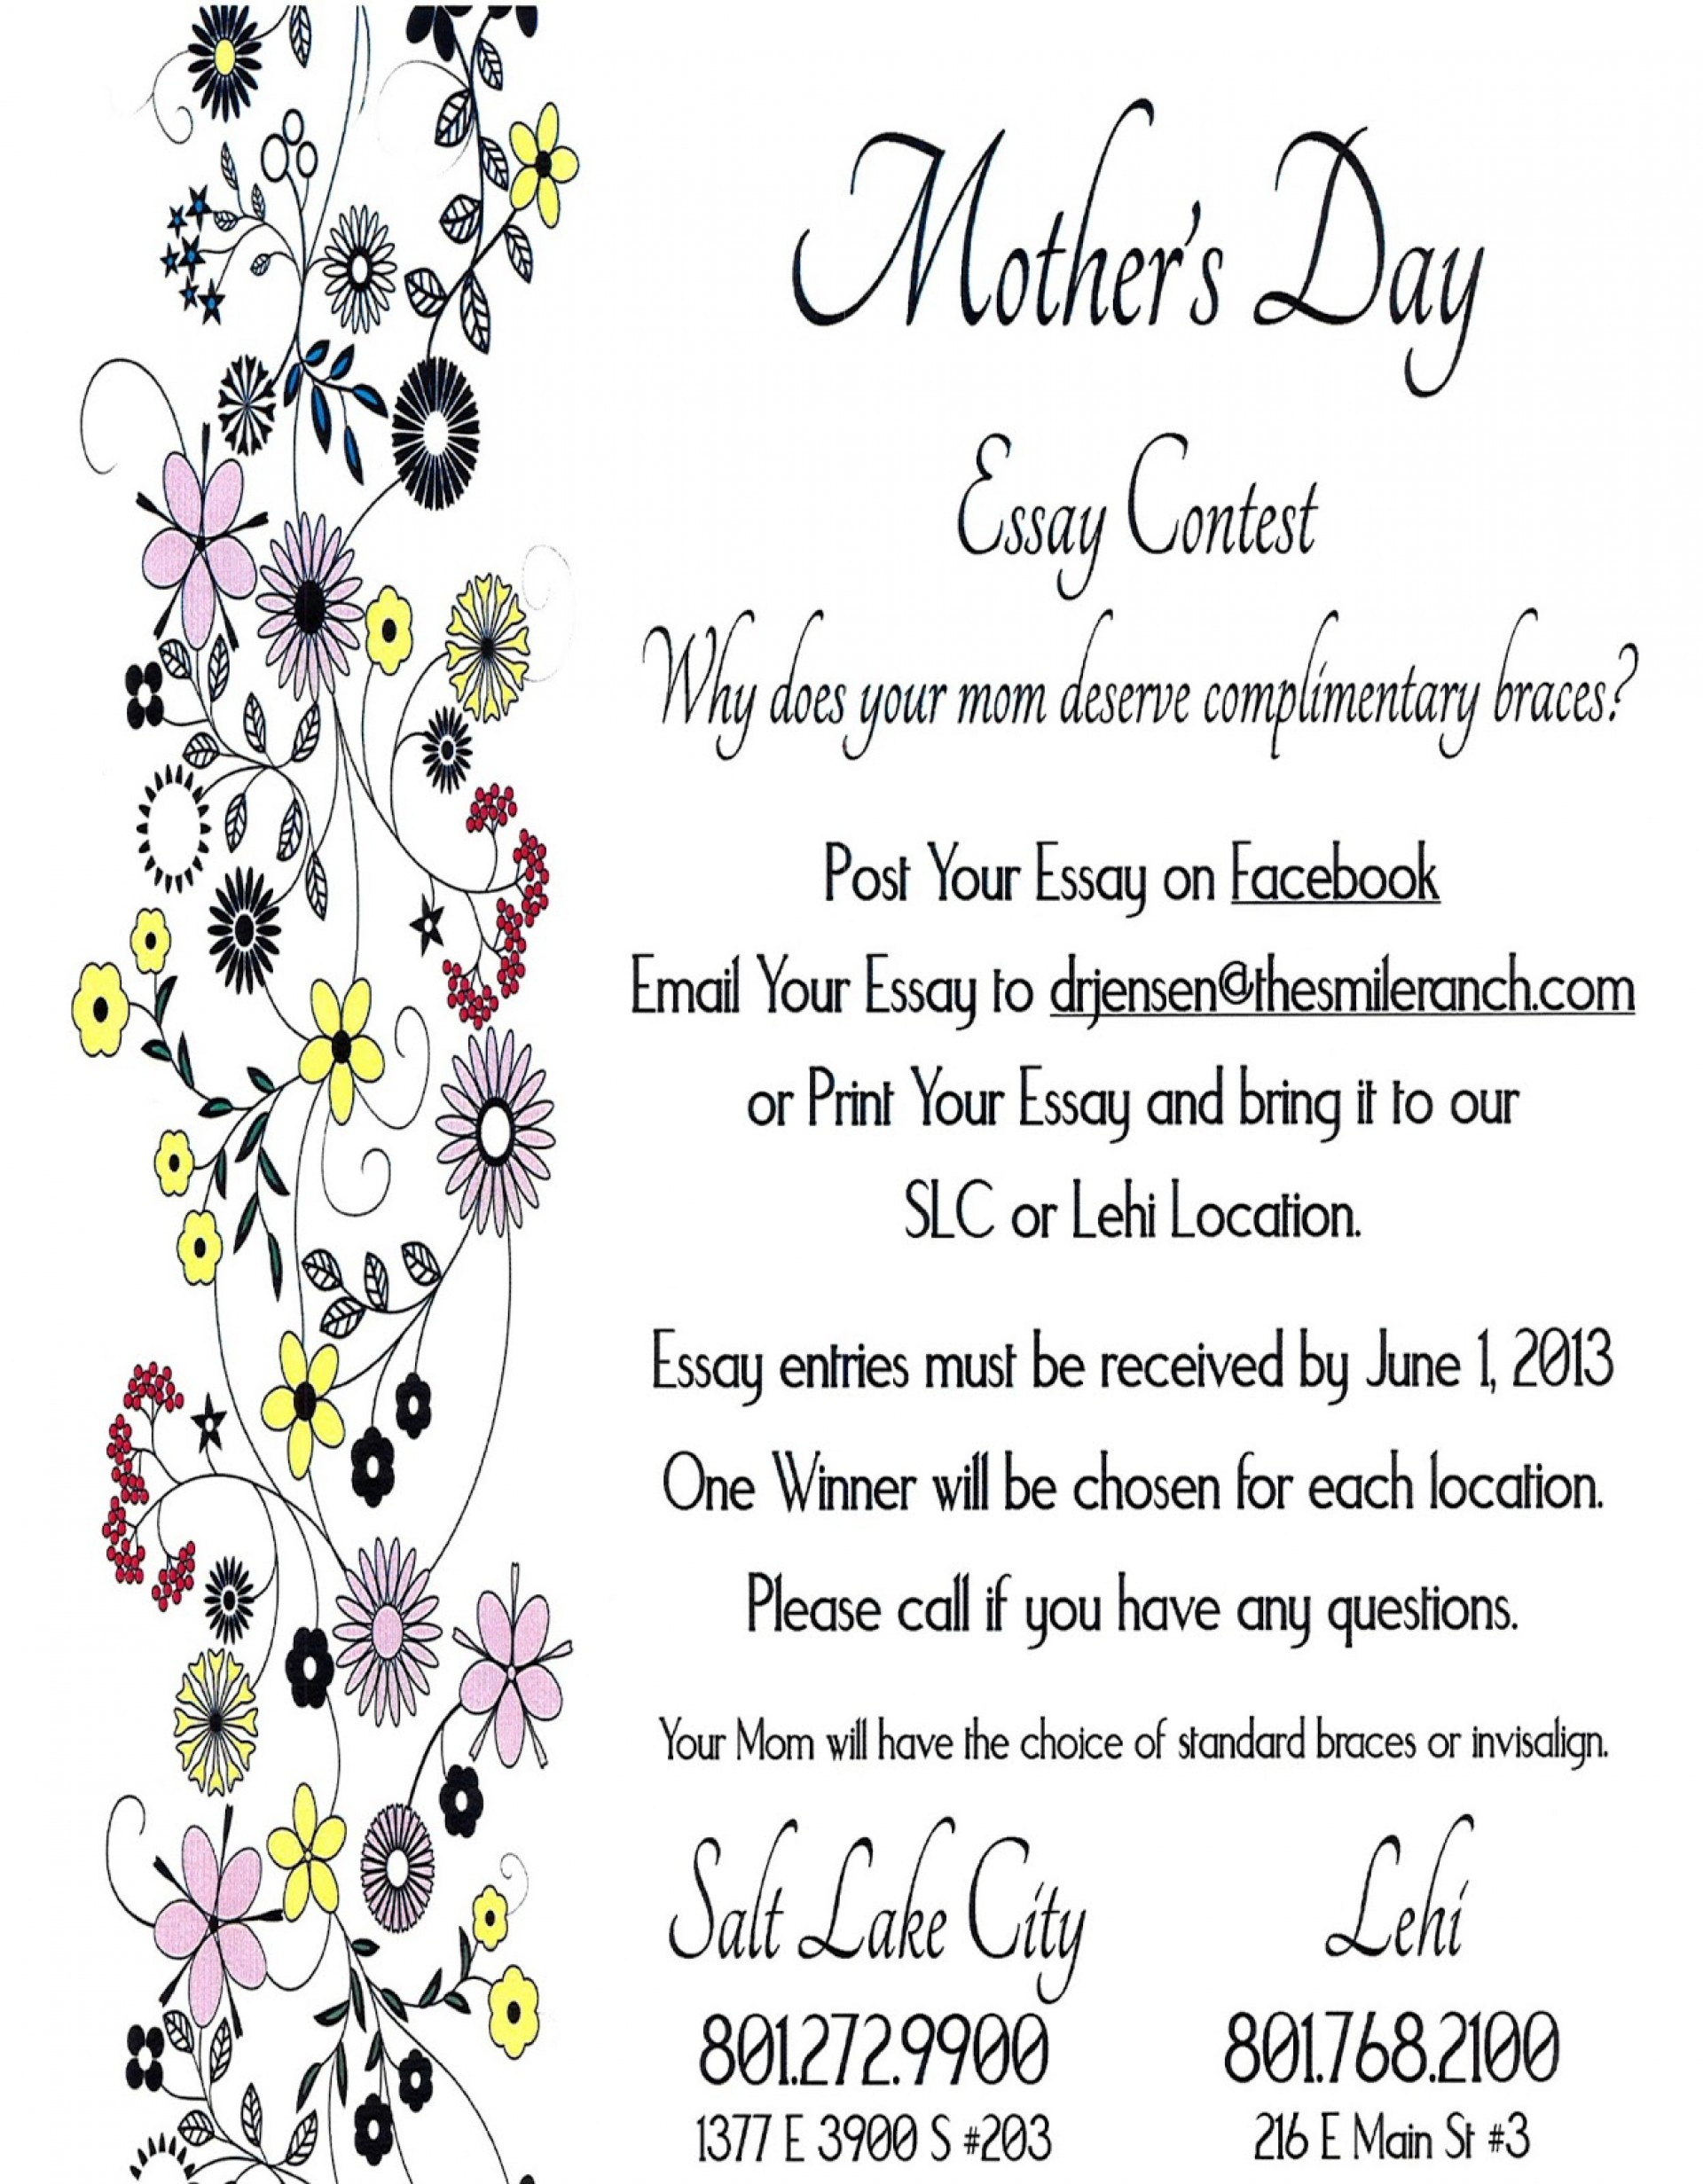 001 Mothersdaycontest Essay Example Mothers Top Day In Kannada Contest Mother's Telugu 1920